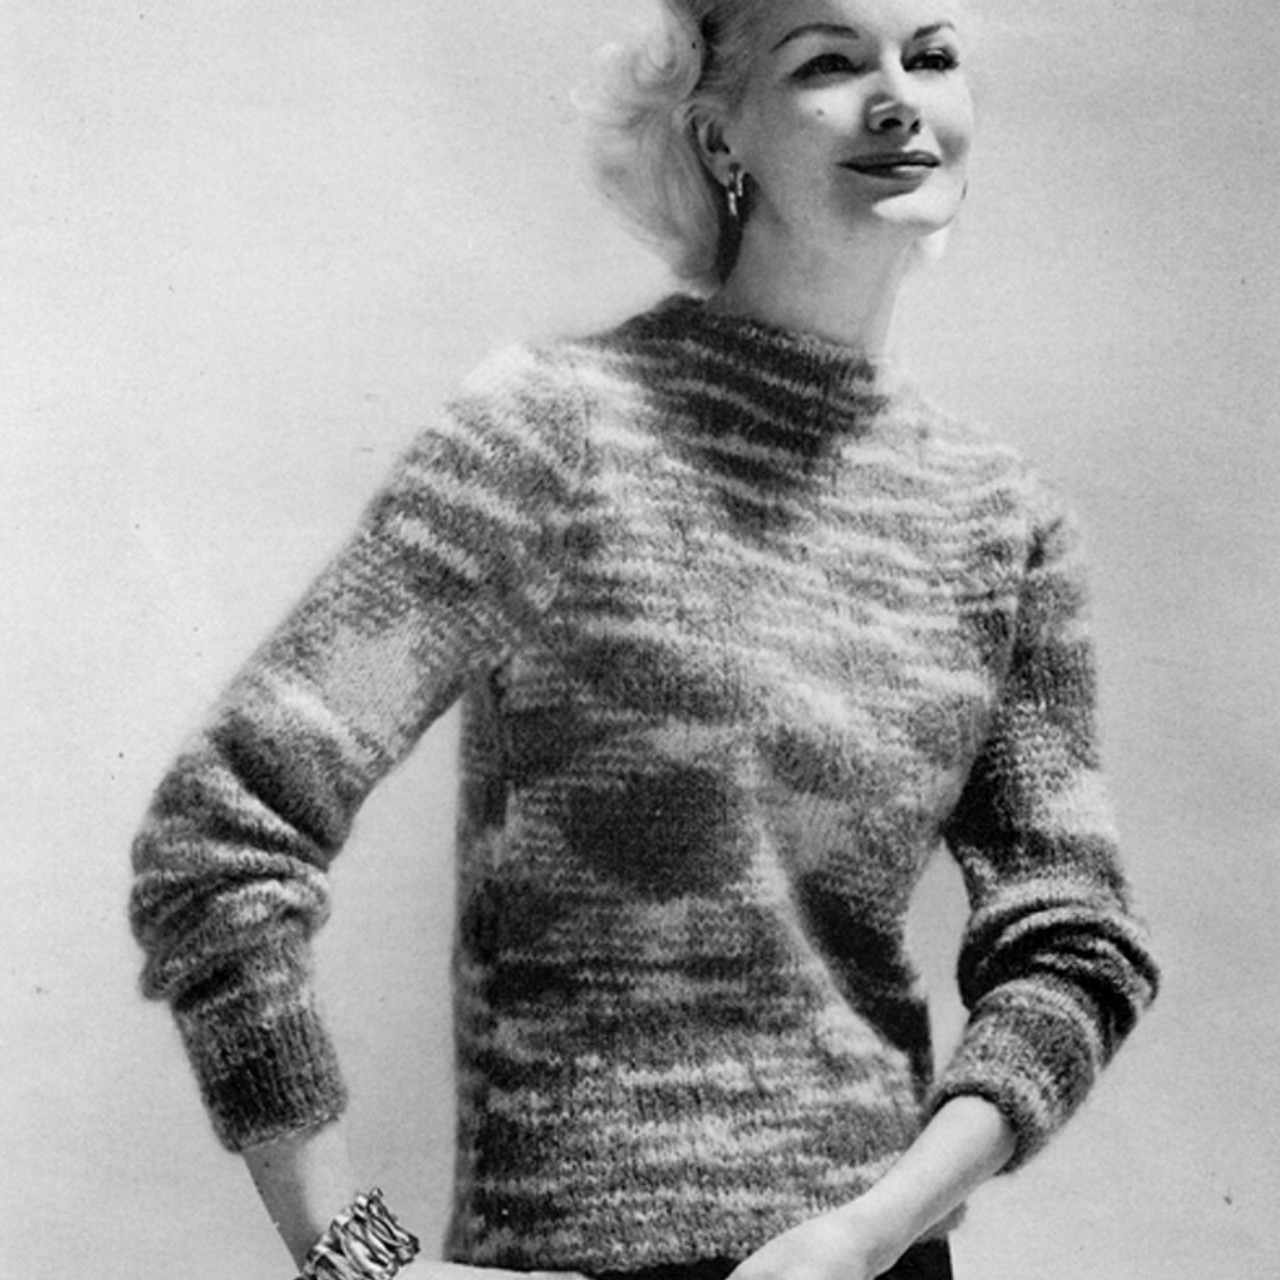 Mohair Fantastica Knitted Boat Neck Sweater Pattern